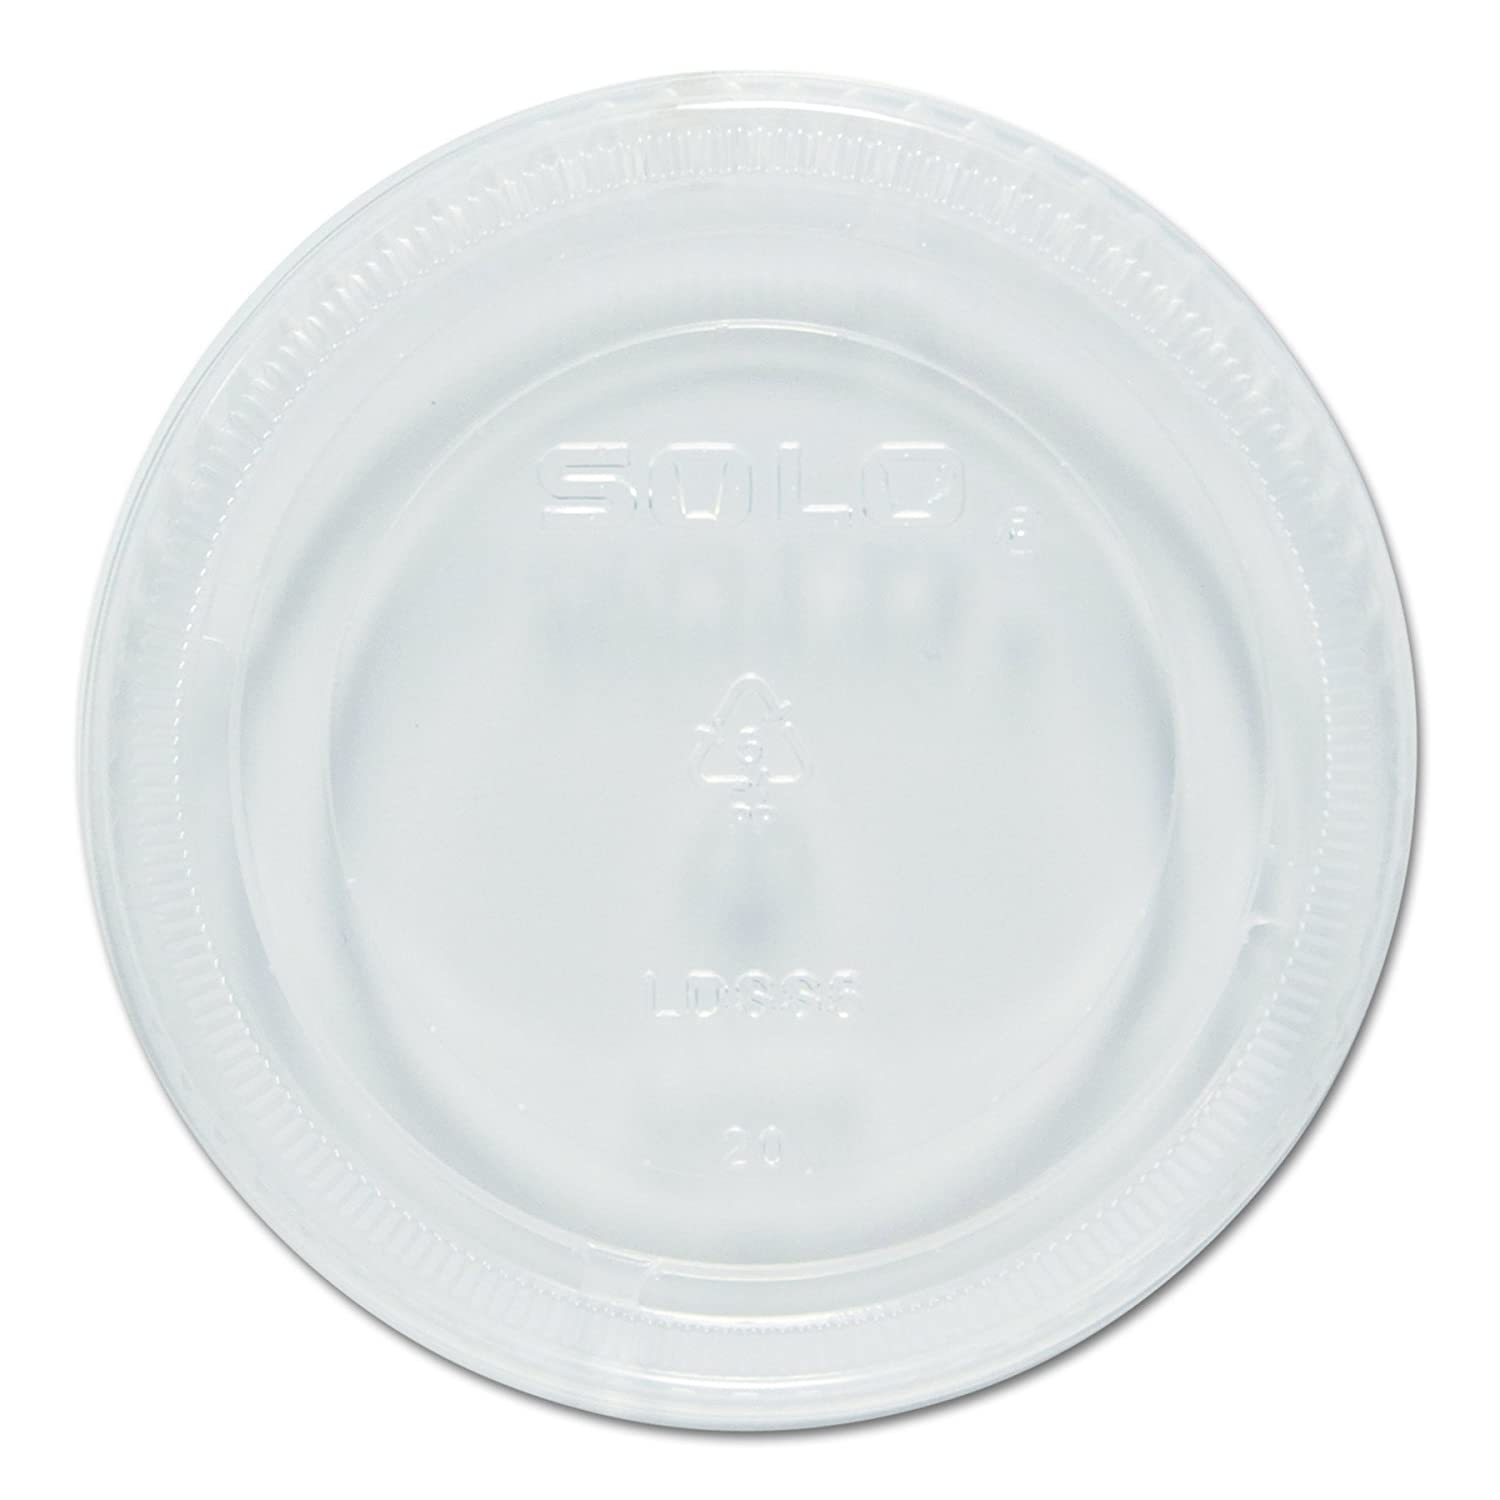 Solo LDSS5-0090 Clear Plastic Sauces, Sides And Sweets Portion Cup Lid - Fits 5.5 oz (Case of 1000)